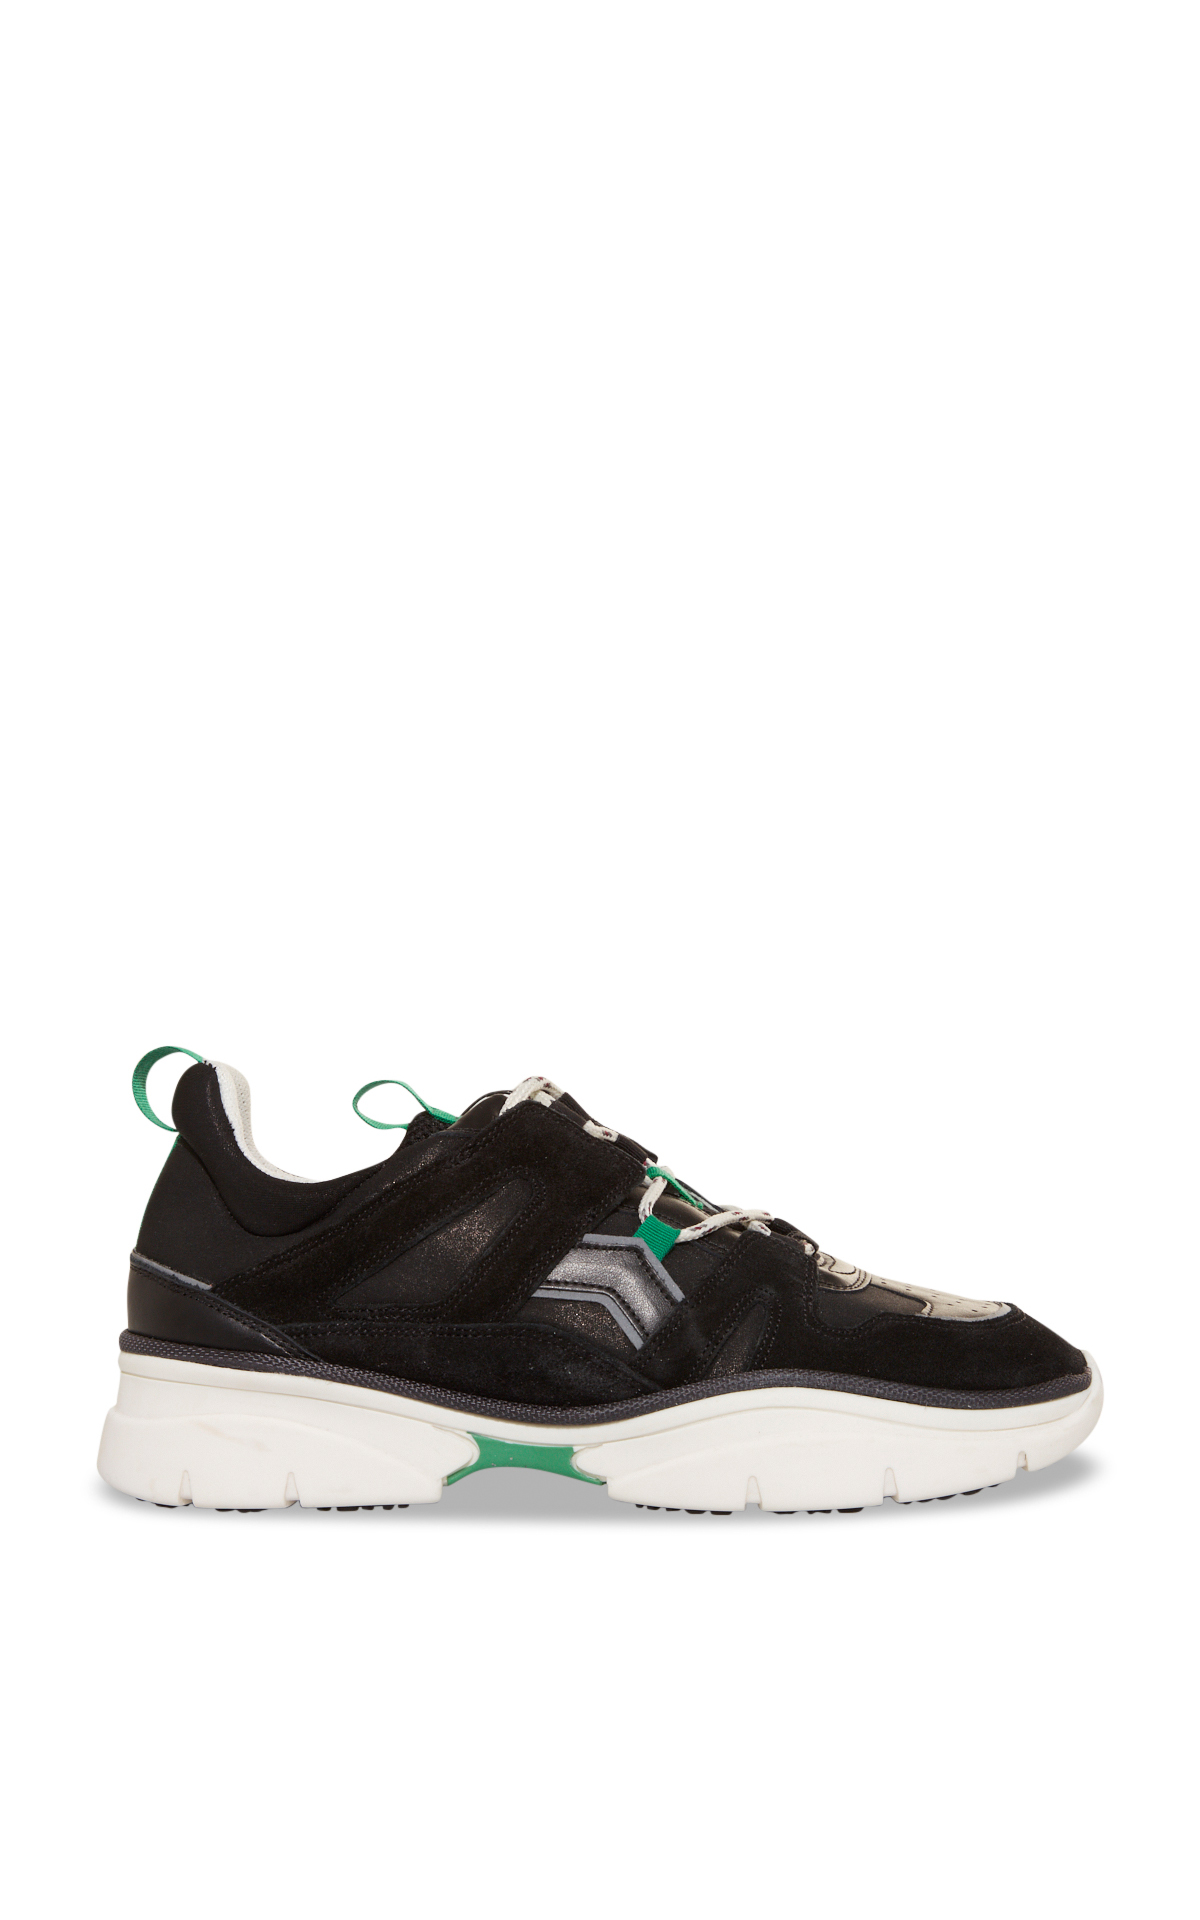 La Vallée Village Isabel Marant Black Kindsay sneakers